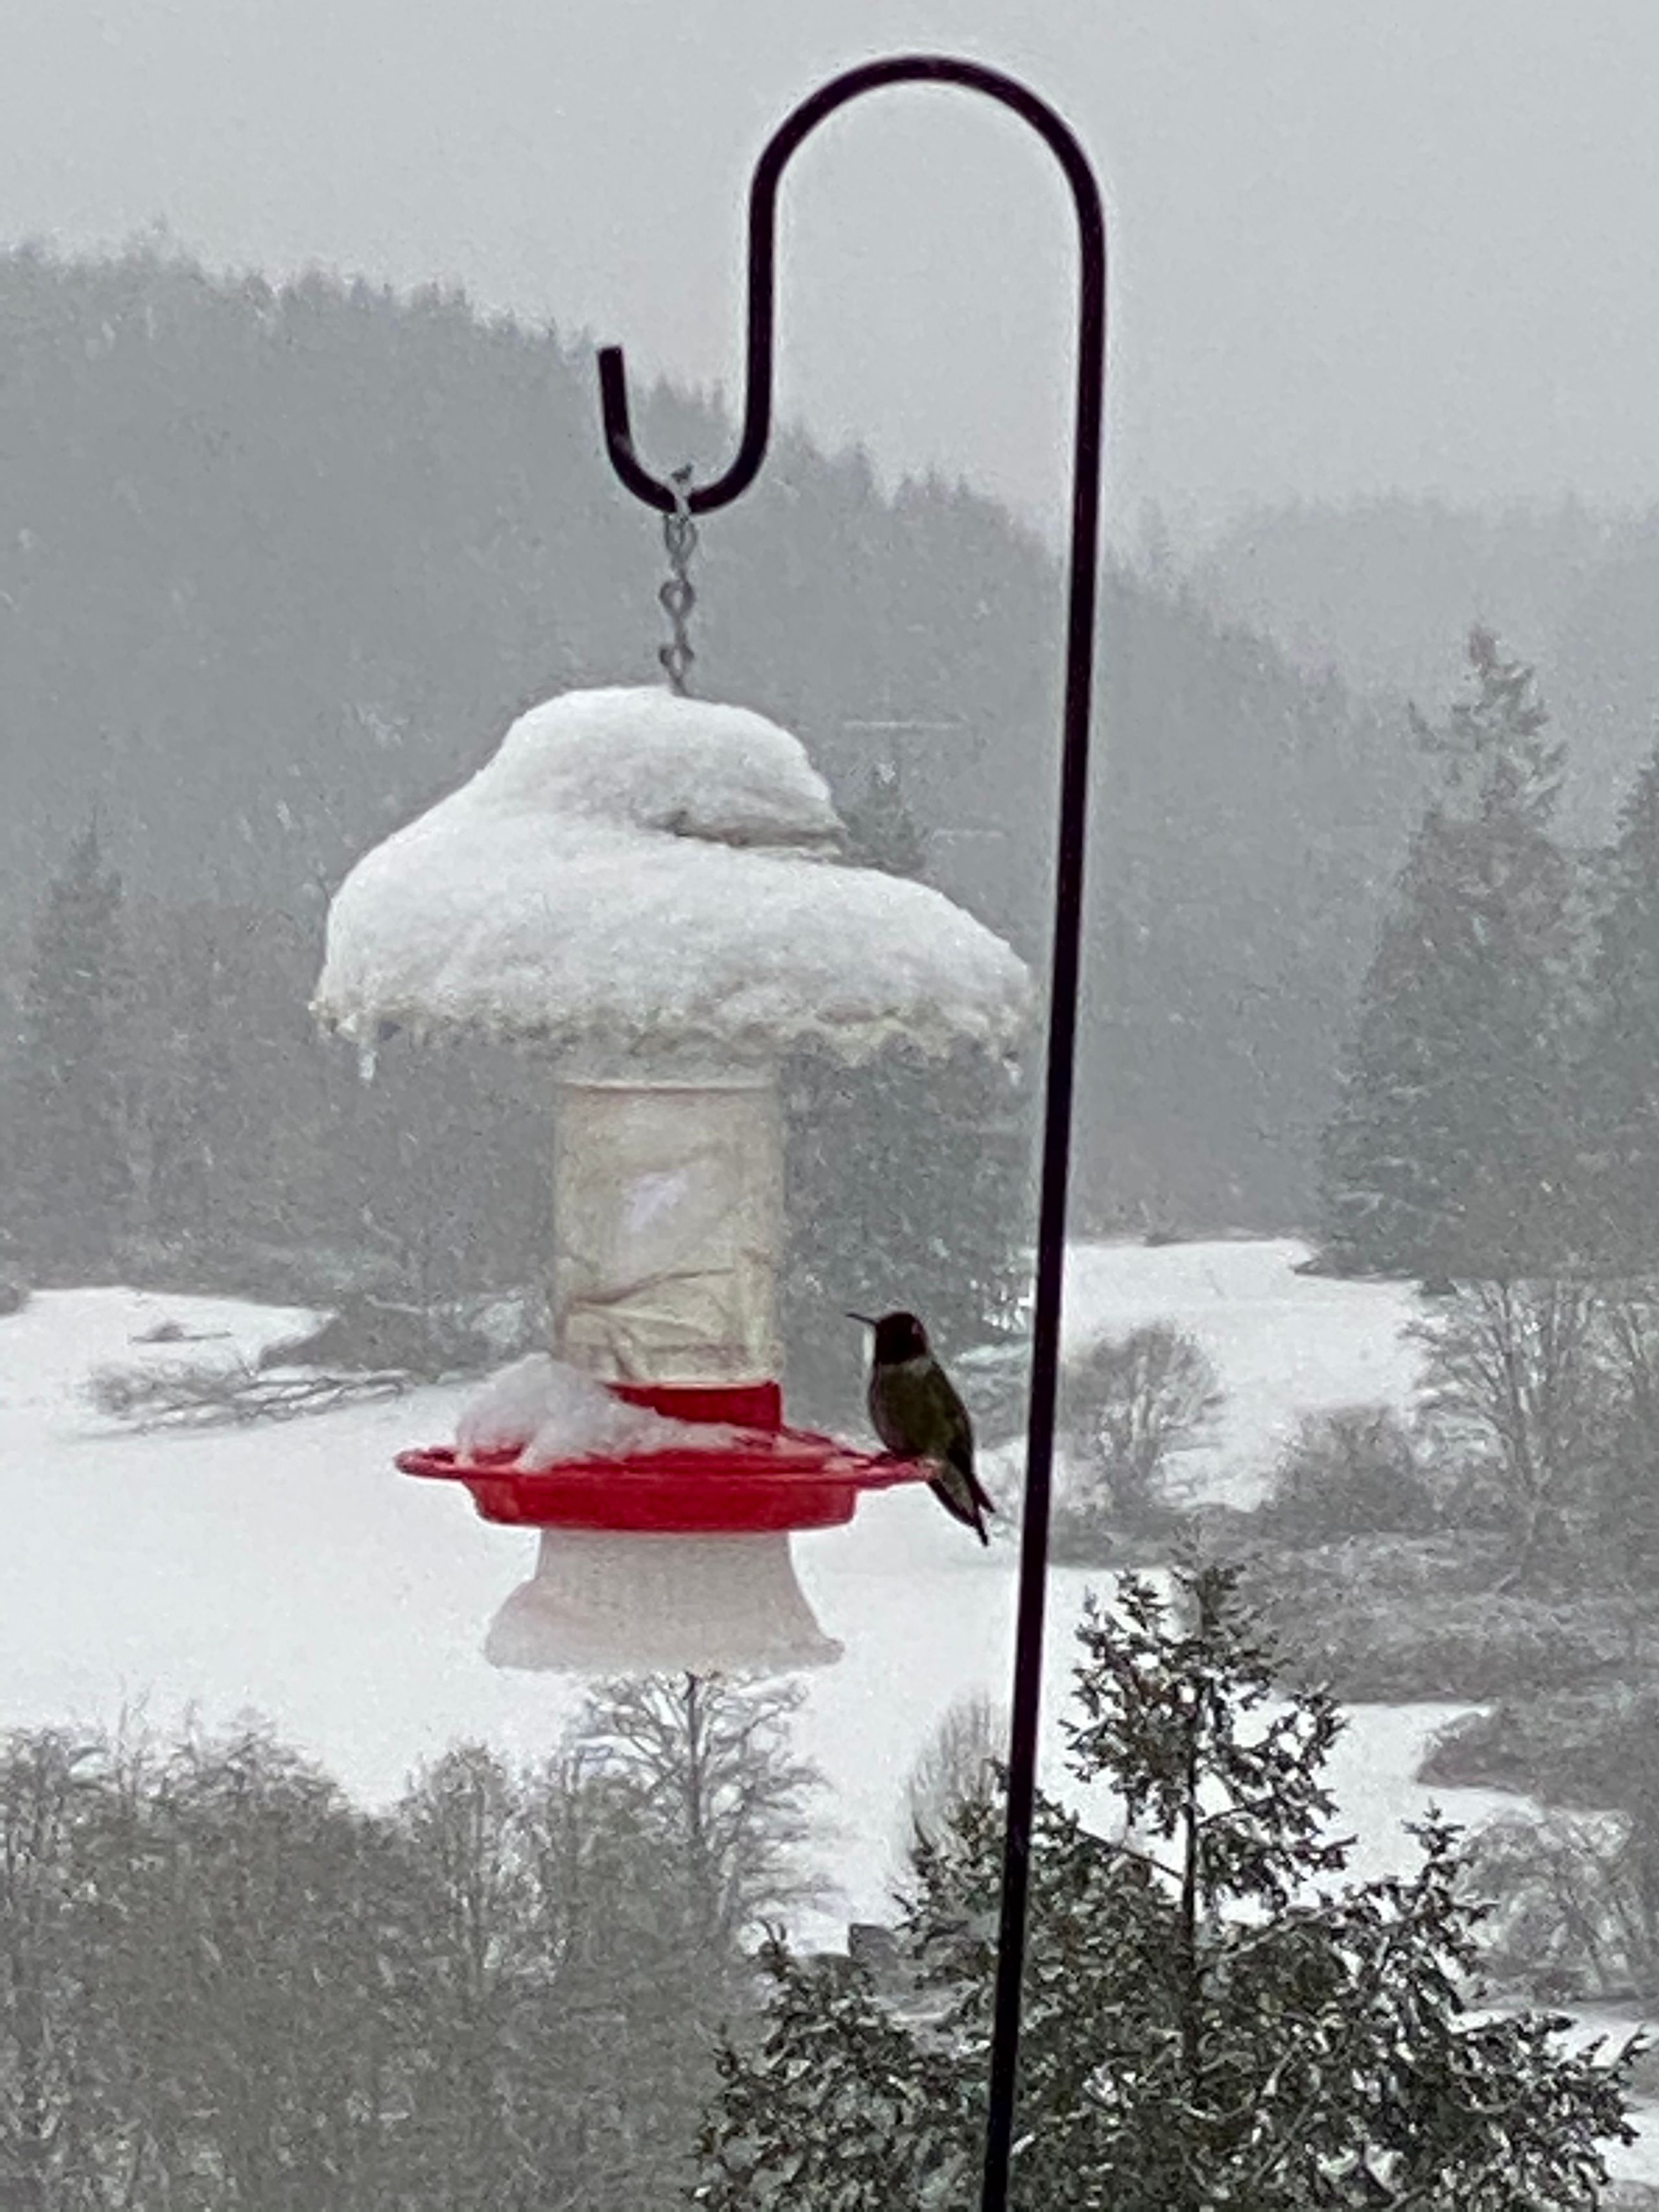 Our hummingbirds don't mind the snow (Image: Judy Deklyen / Chime In)